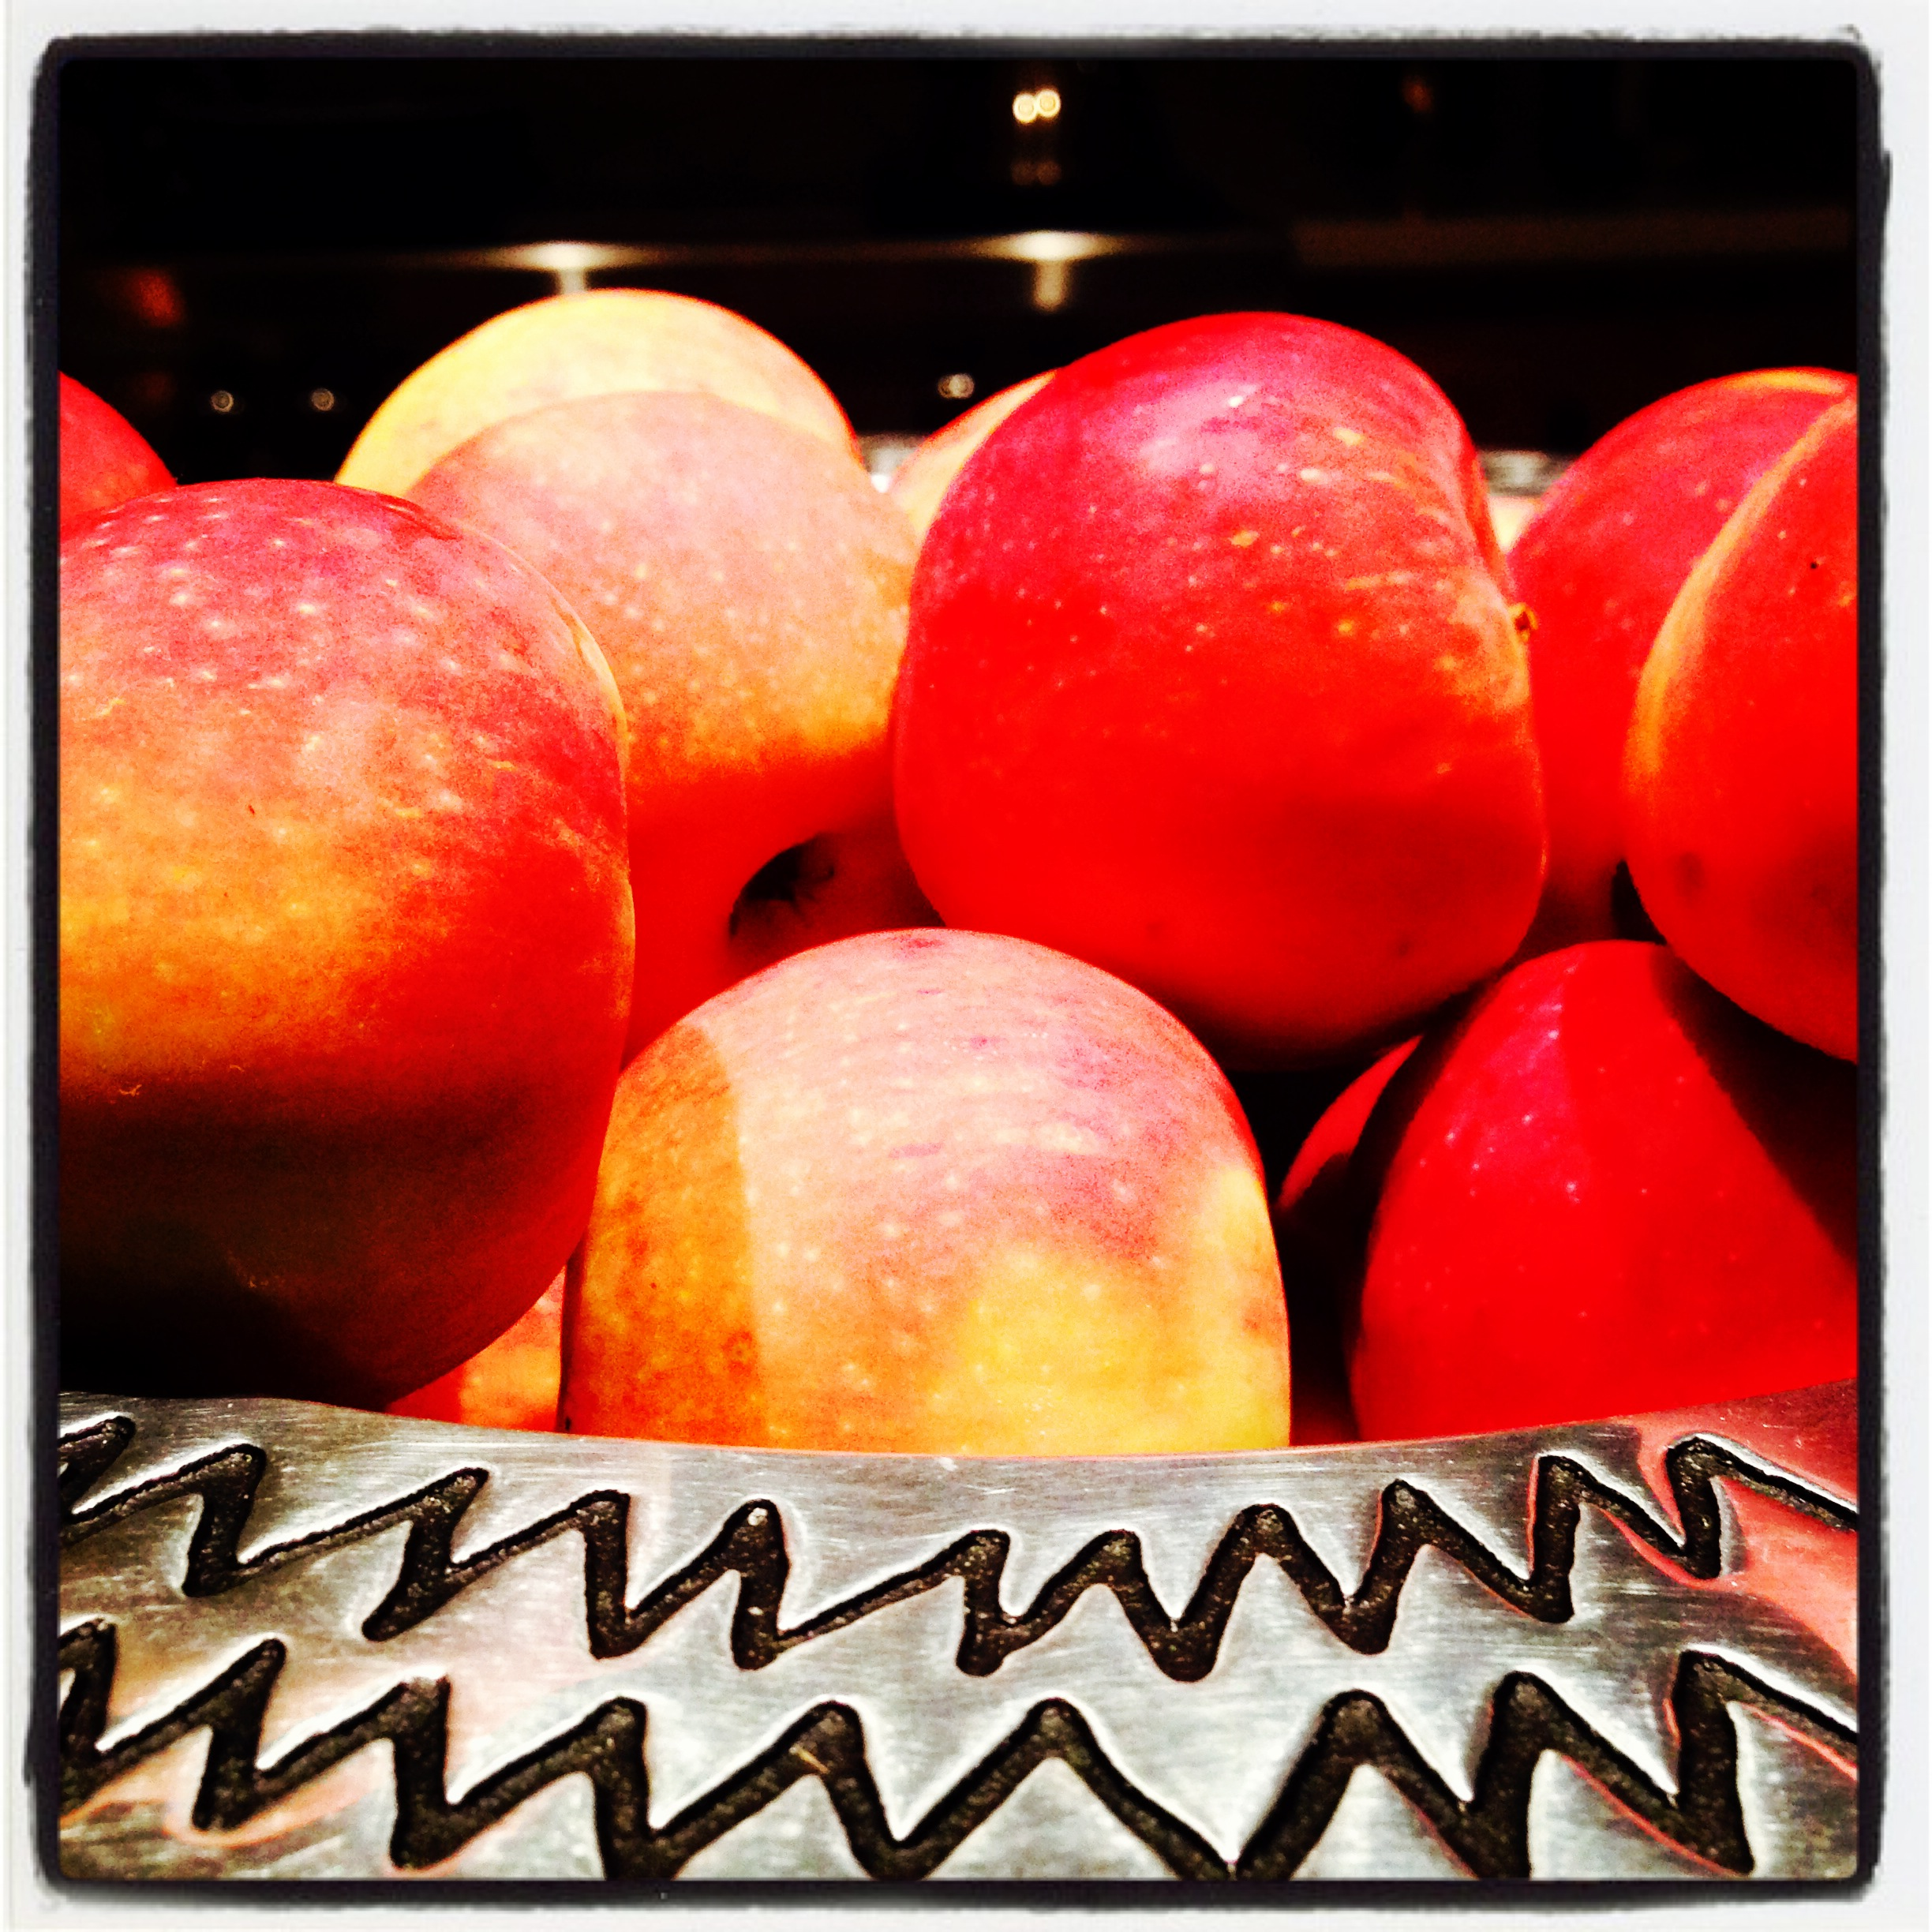 This one fell flat on Instagram, maybe because I cropped it so closely and the color of those apples is so saturated.